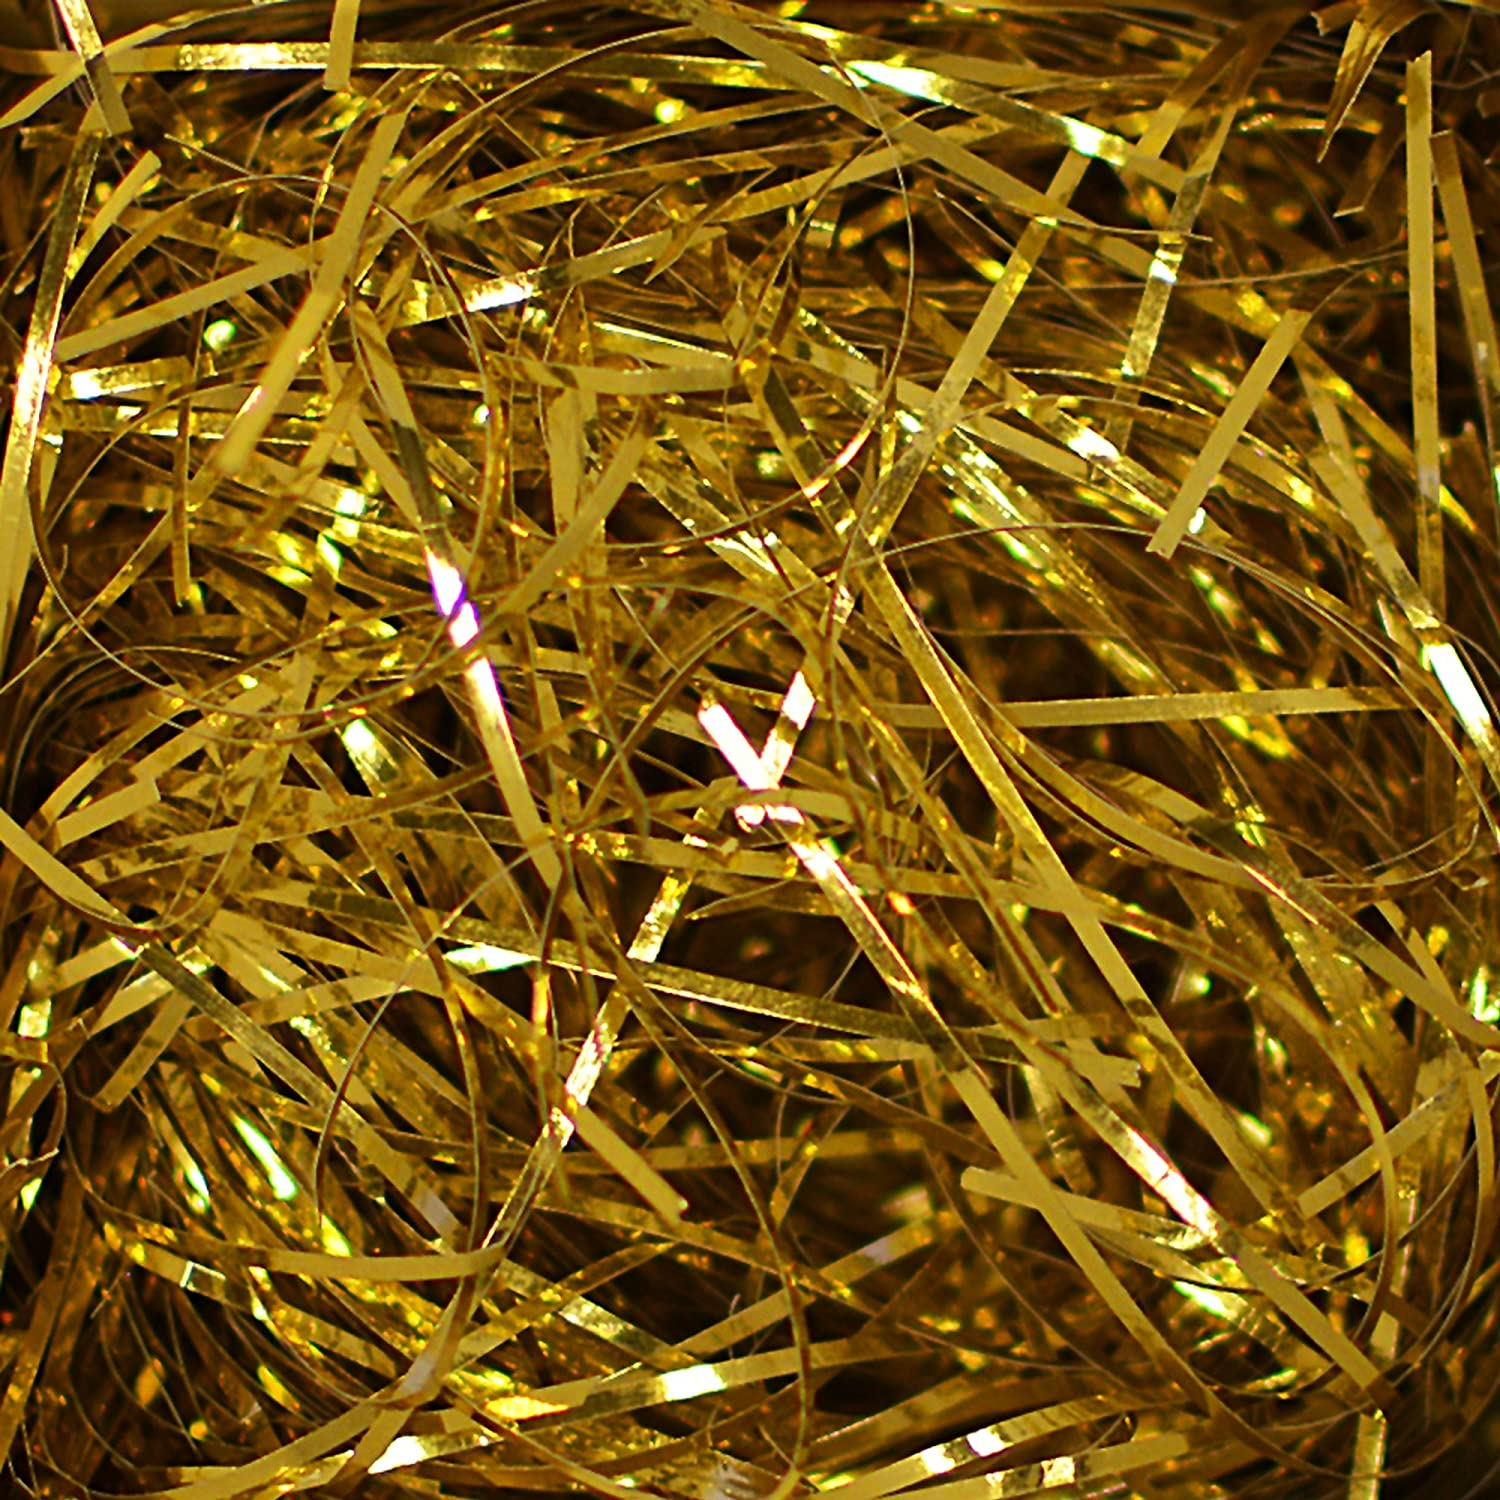 Box Gold and White Metallic VeryFine Cut Color Shred Gift Packing 10 Lb